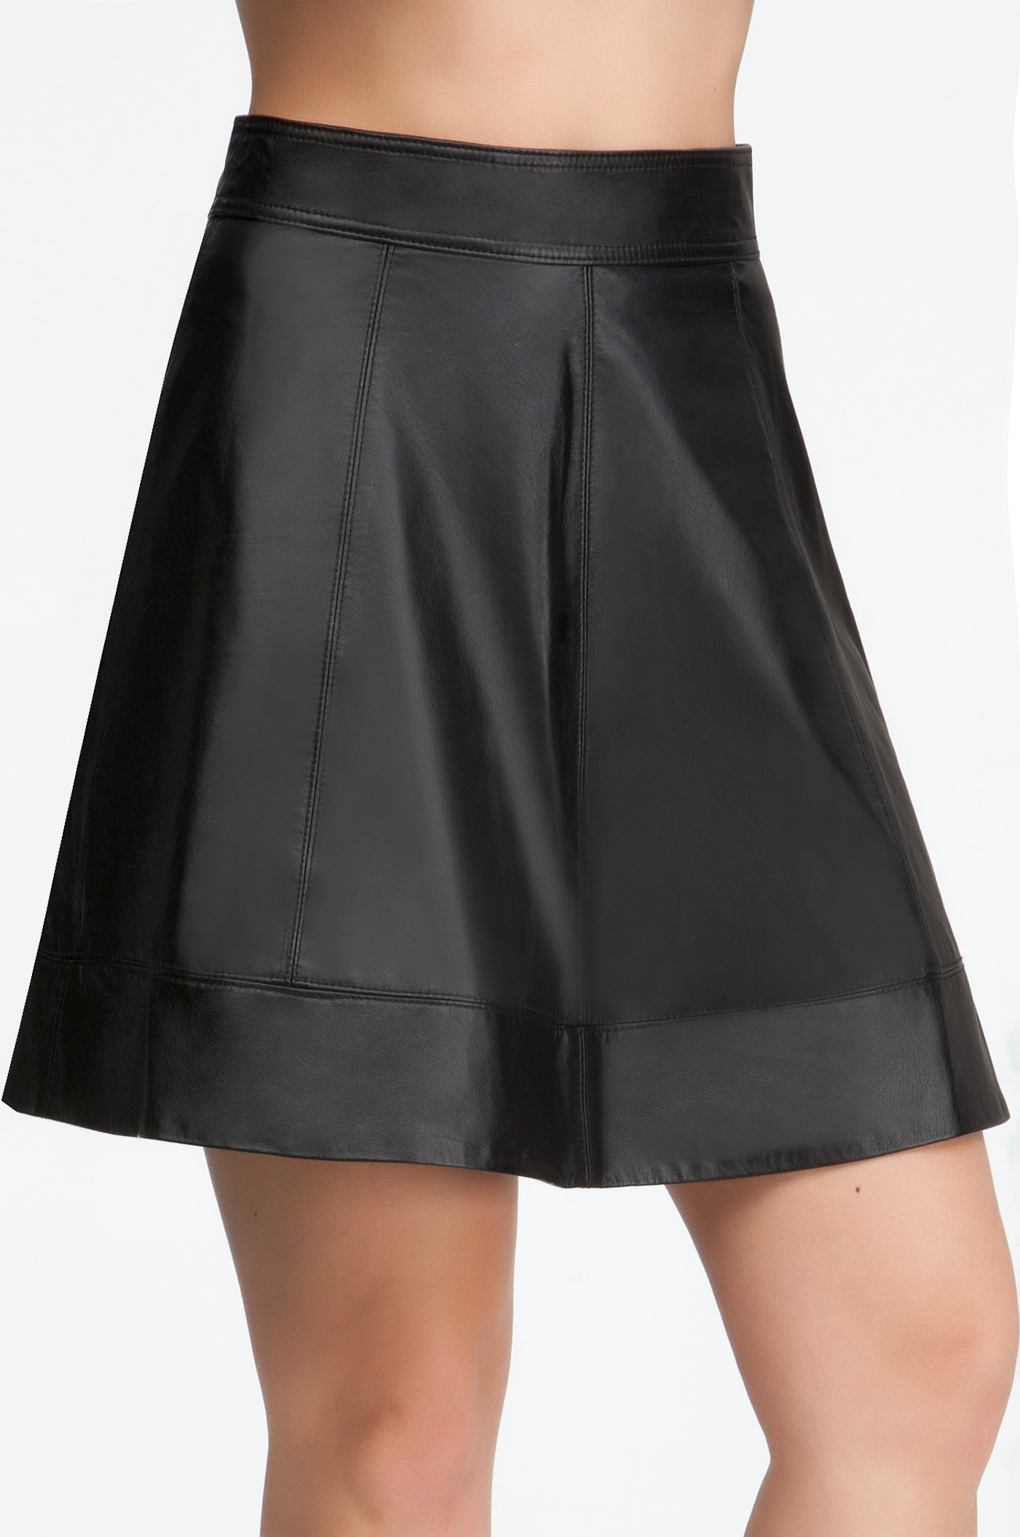 Shop for Designer Skirts for Women at REVOLVE CLOTHING. Styles include Denim, Circle, Leather, Maxi, Midi, Mini, Pencil and more from top fashion brands!